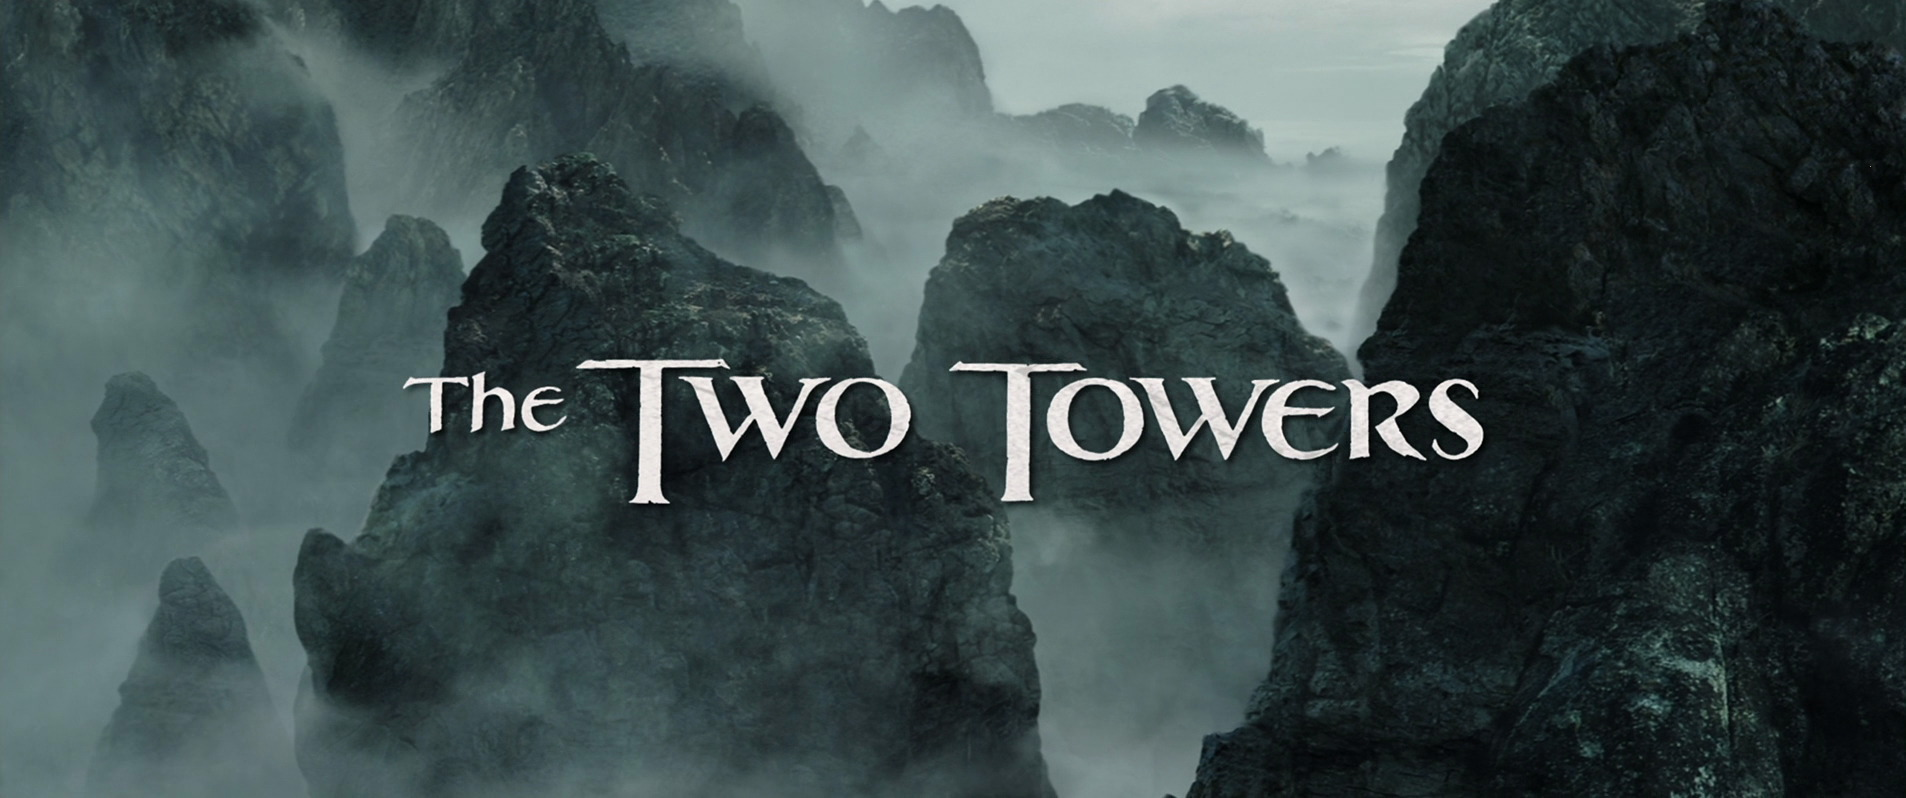 lord of the rings two towers 1080p torrent download